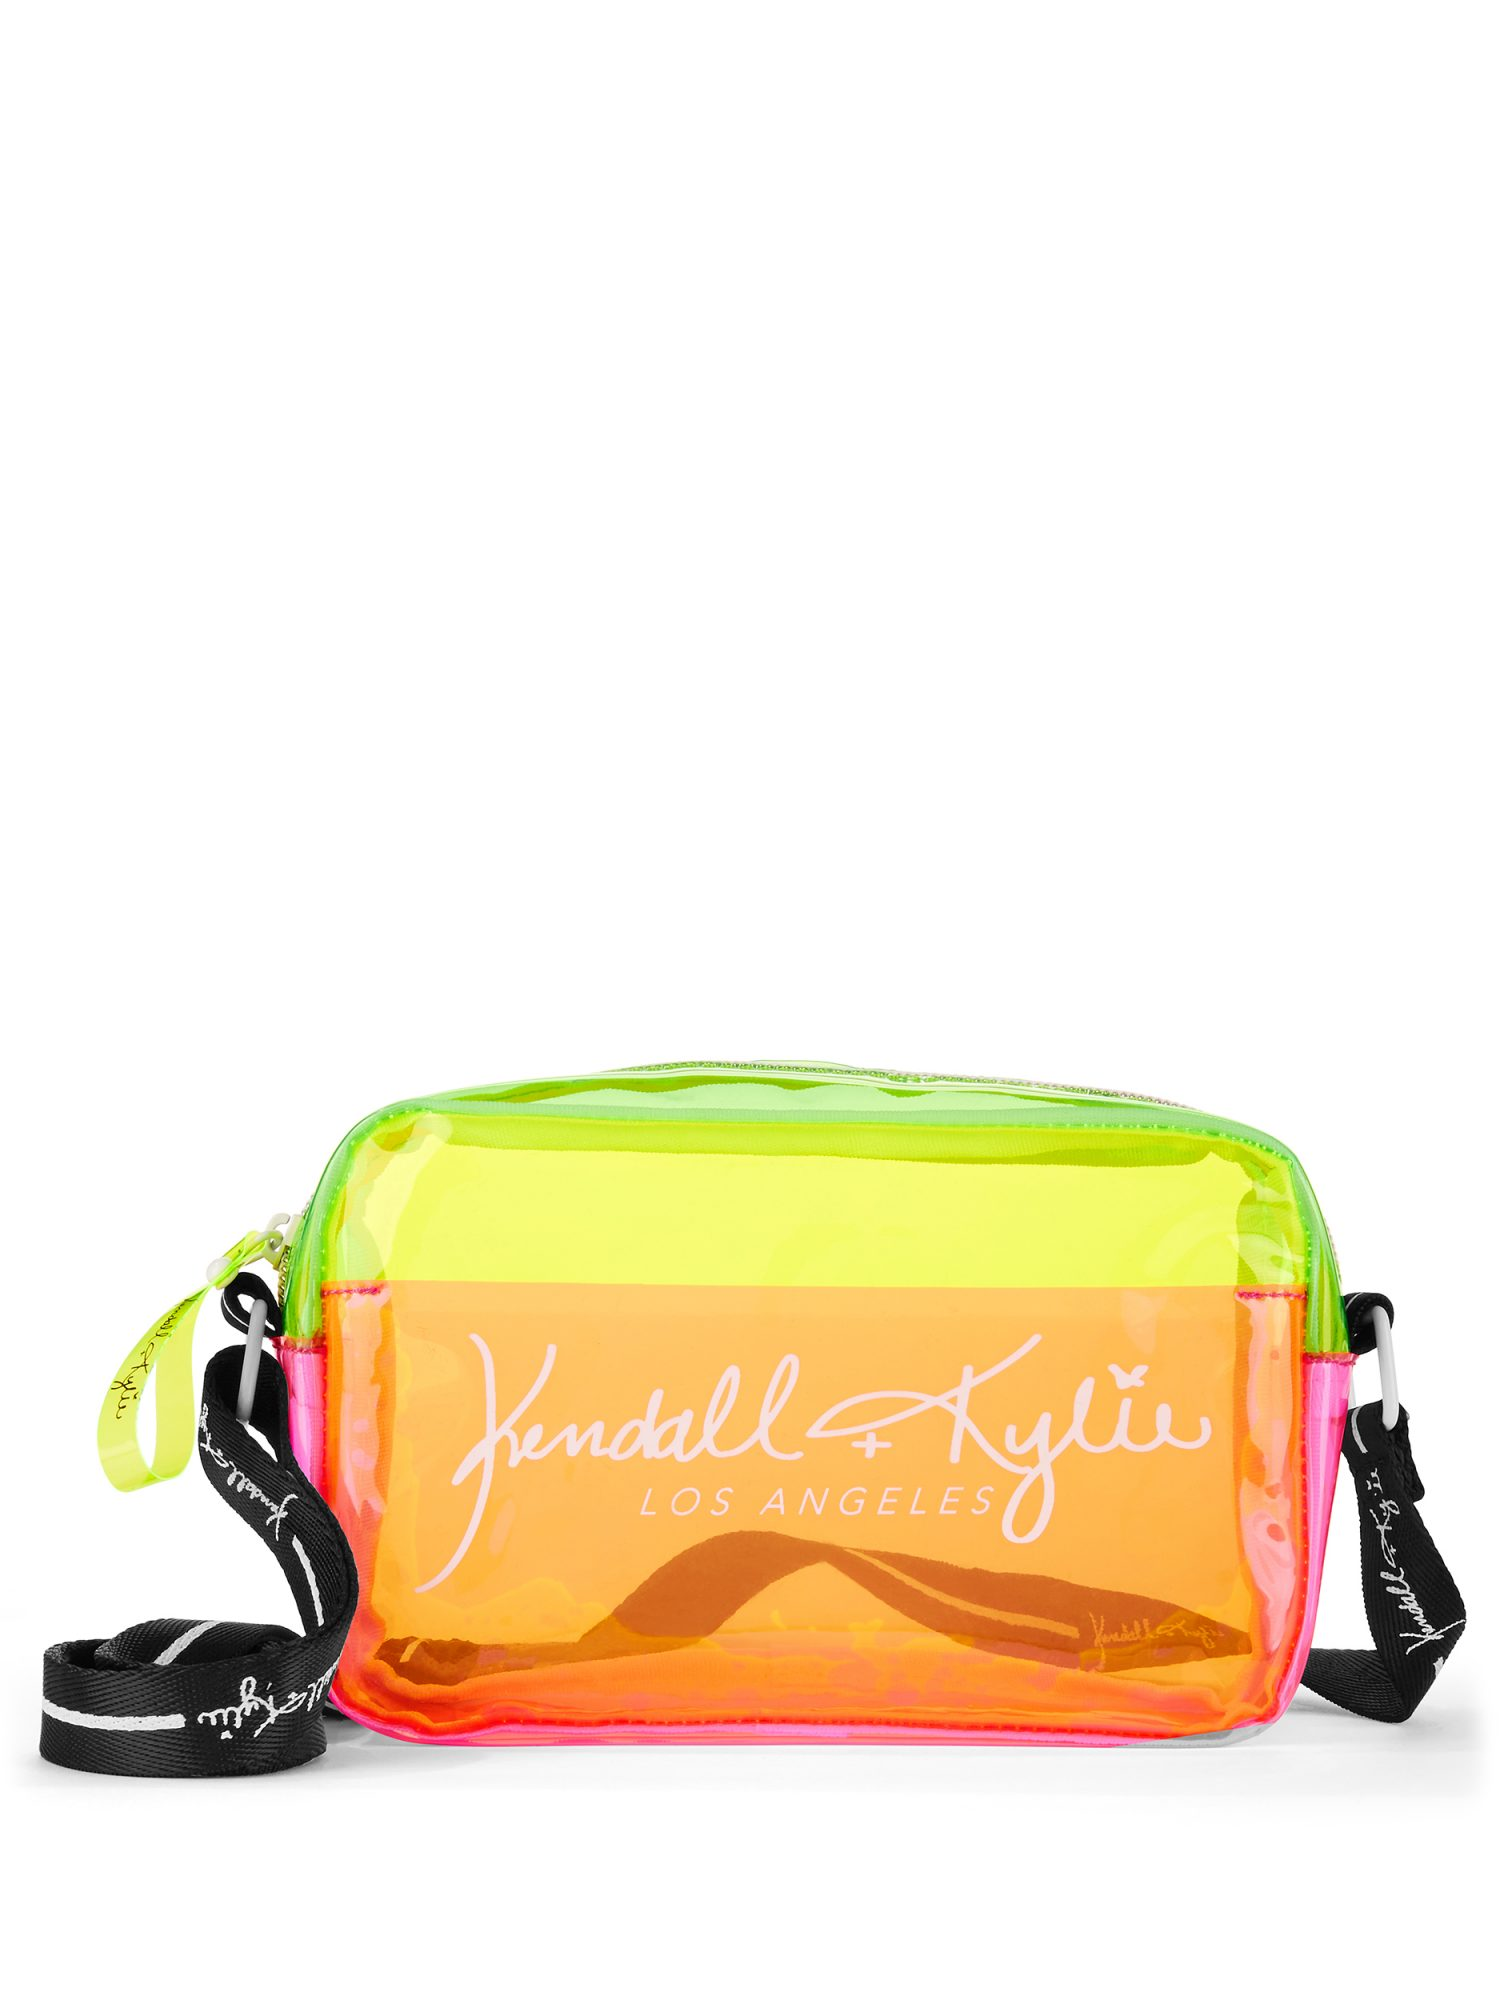 Neon pink, orange, and yellow belt bag from Kendall + Kylie line for Walmart